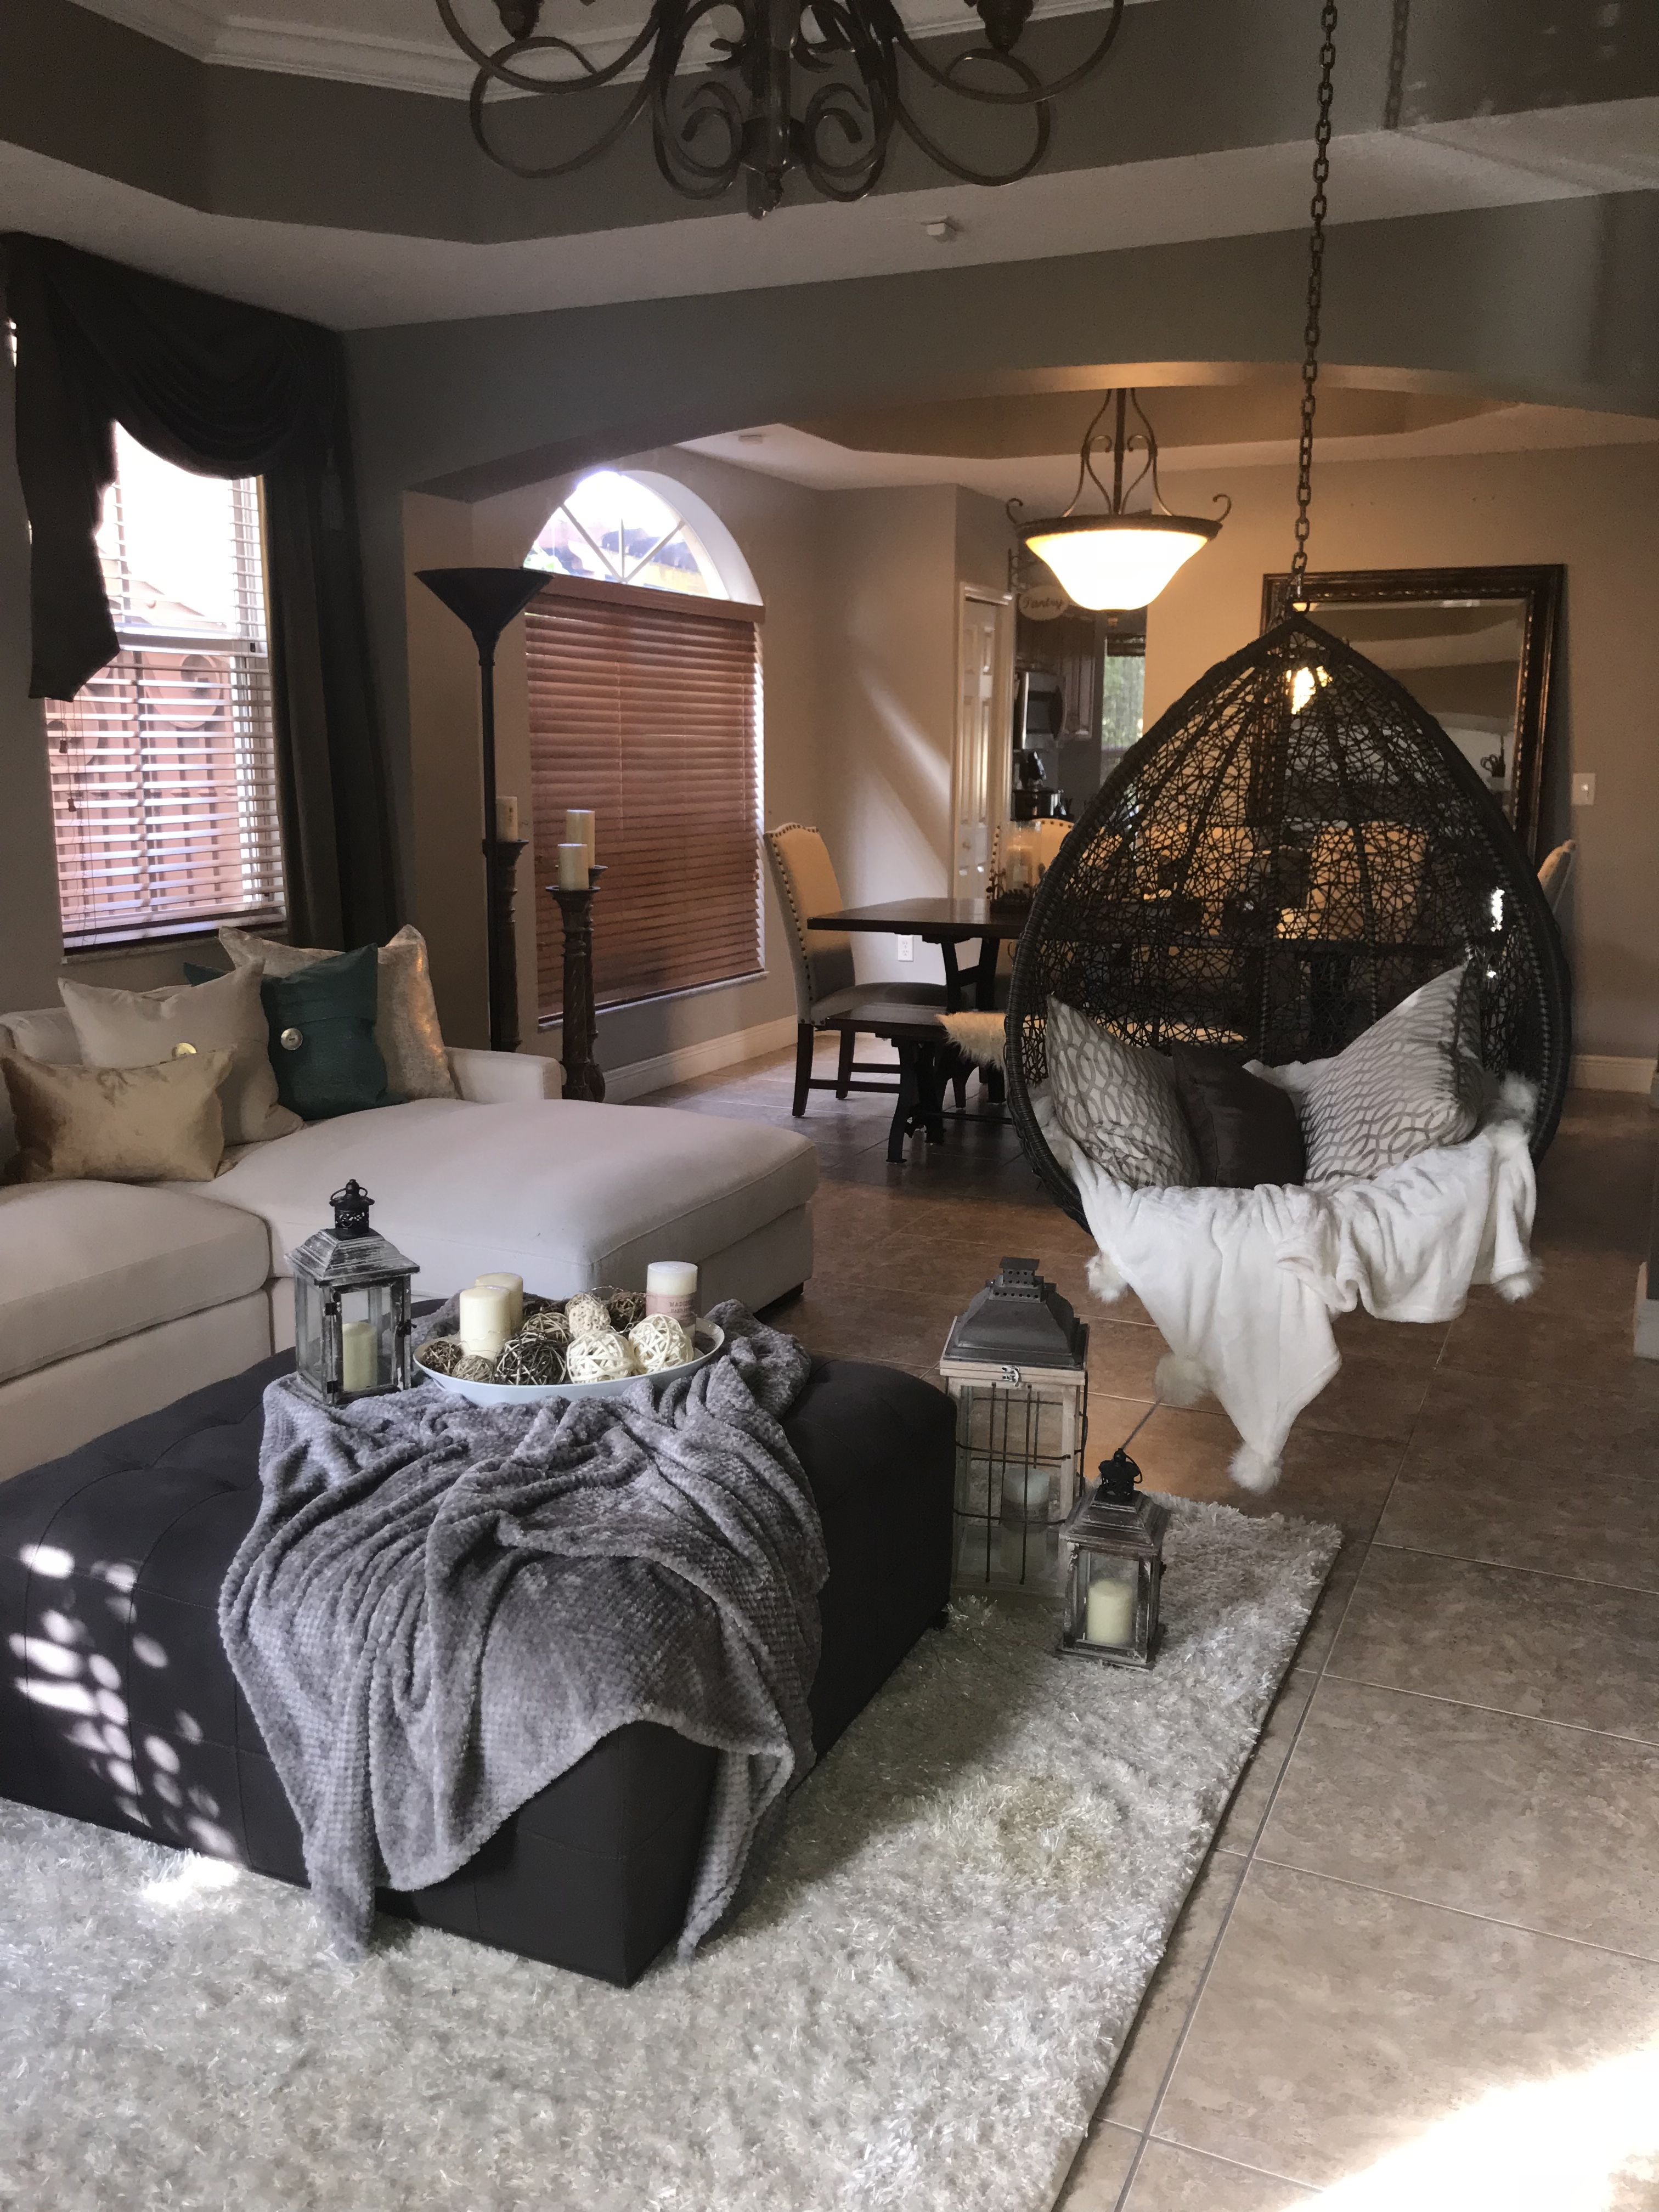 Pin by iris cortina on living rooms pinterest living rooms and room